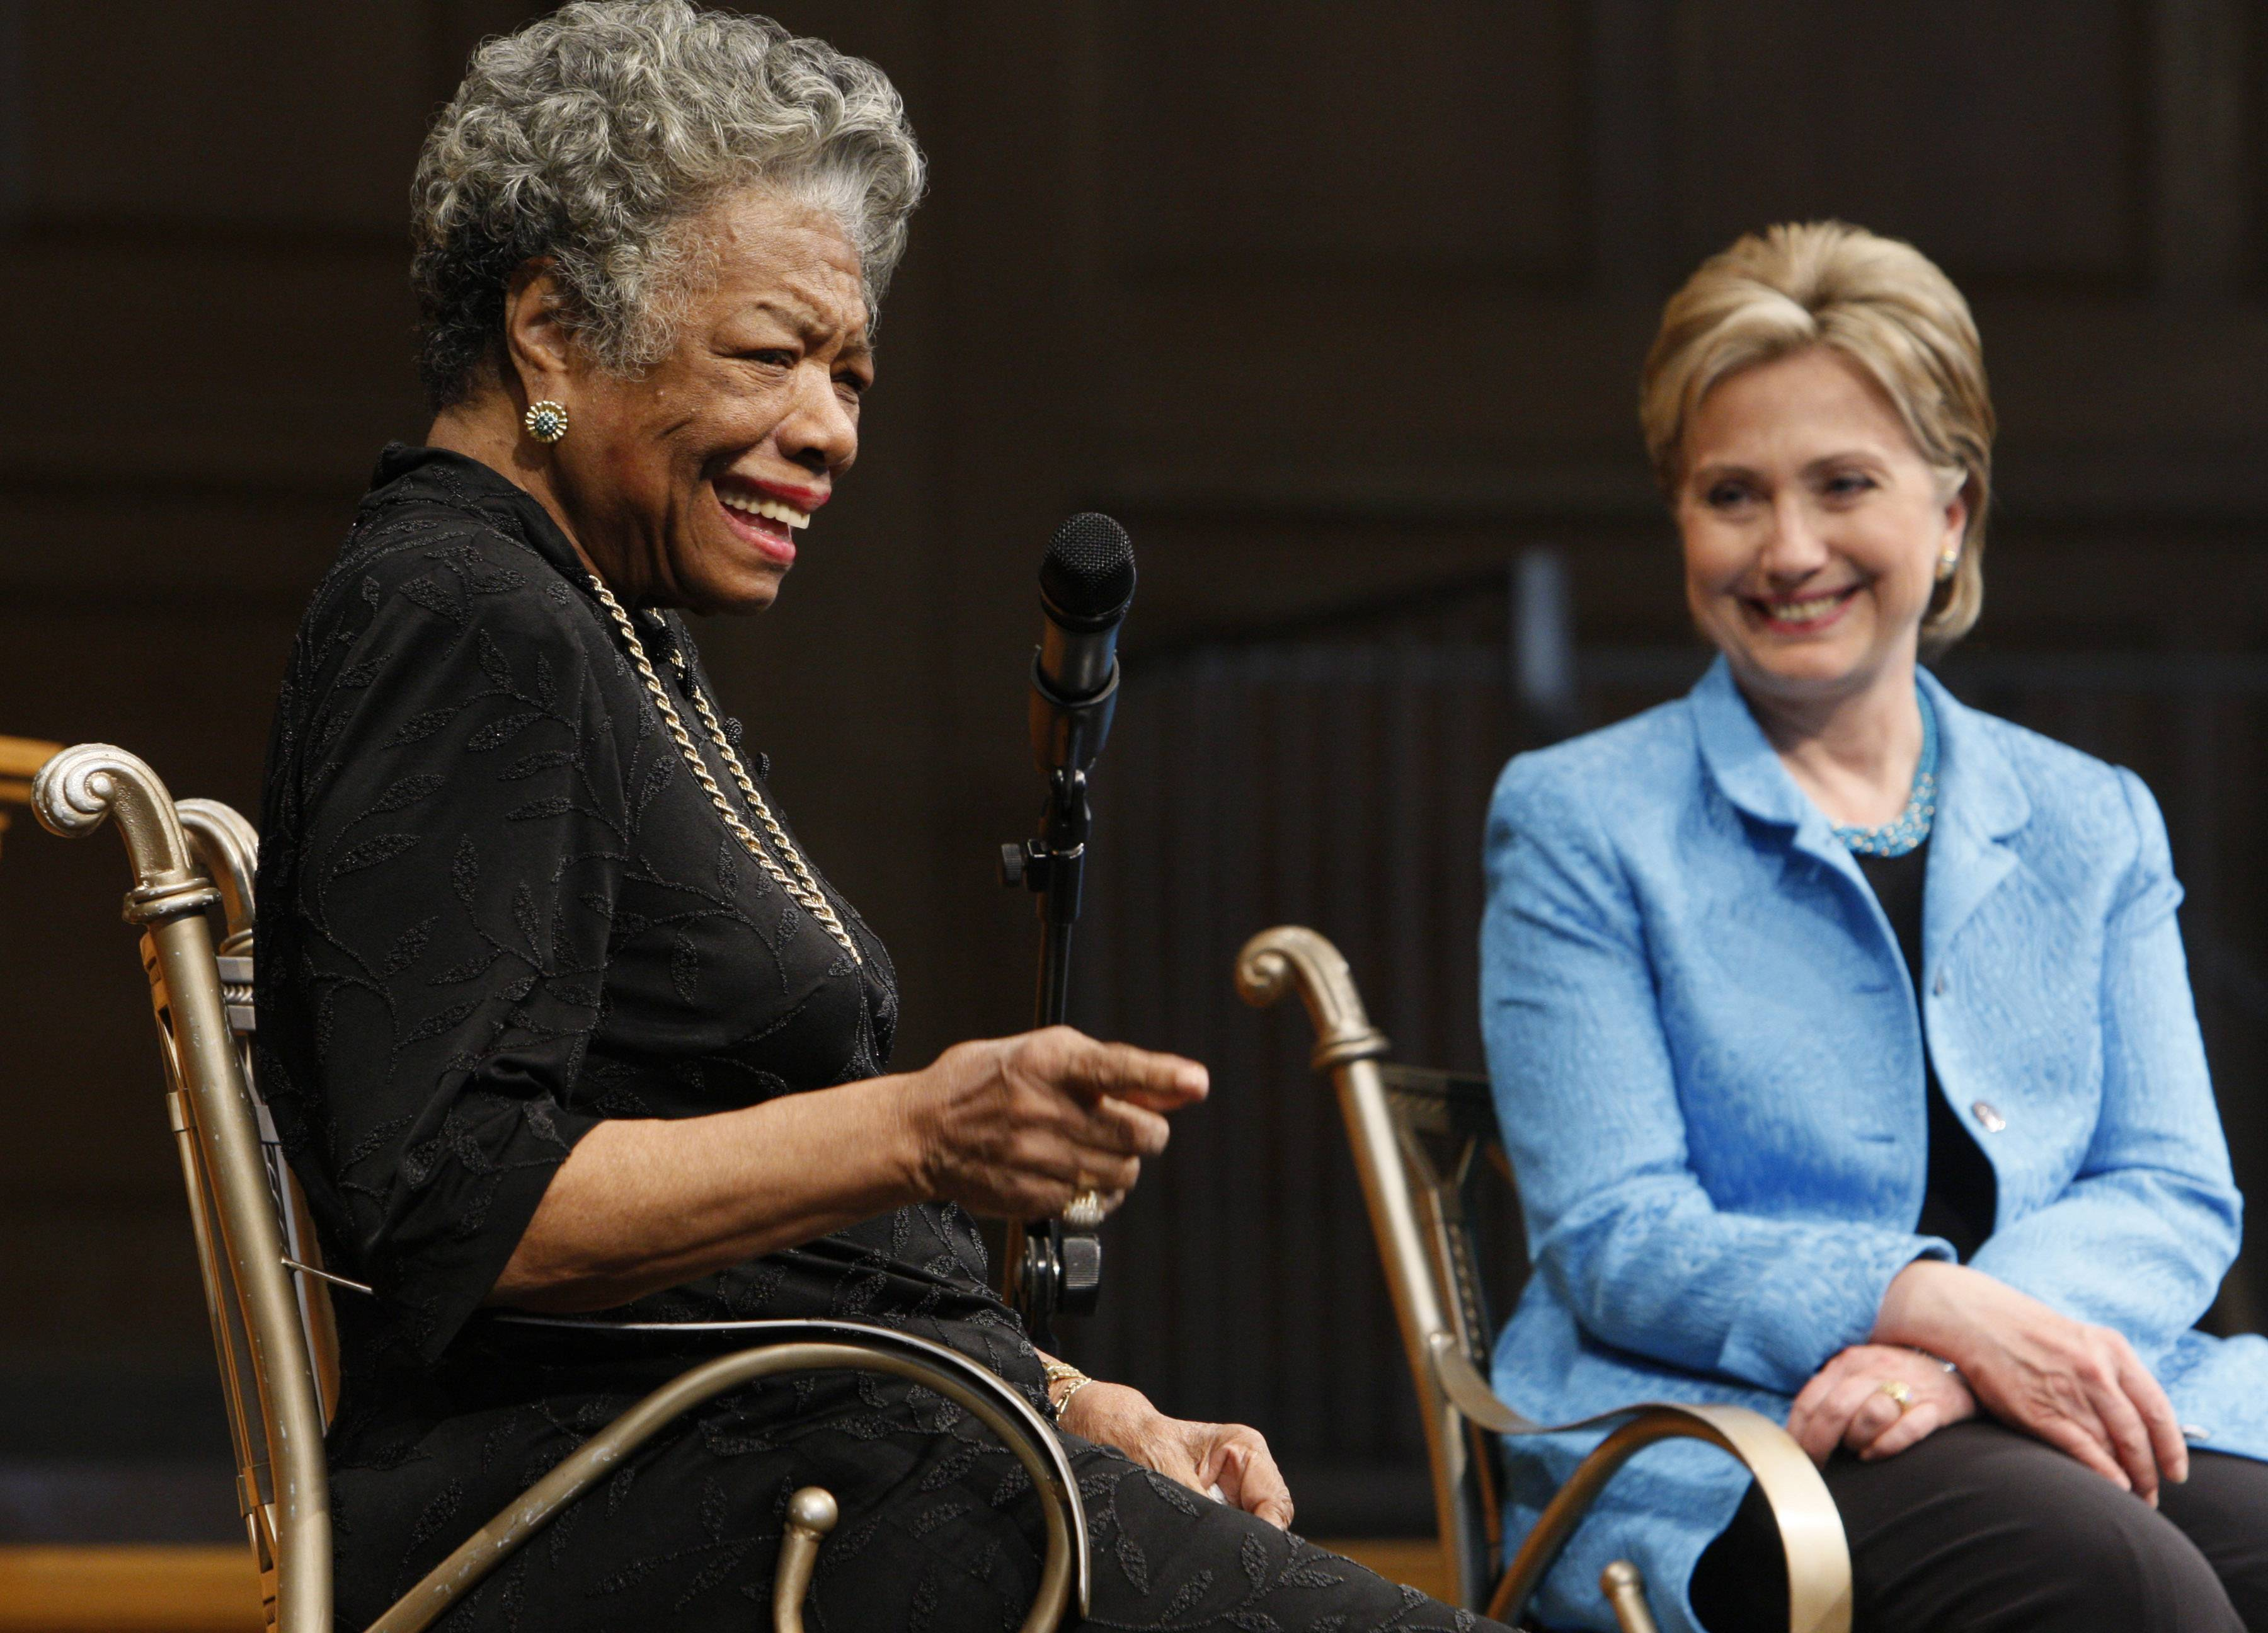 Democratic presidential hopeful, Sen. Hillary Rodham Clinton, D-N.Y., campaigns with author Maya Angelou at Wake Forest University in Winston-Salem, N.C., Friday, April 18, 2008.